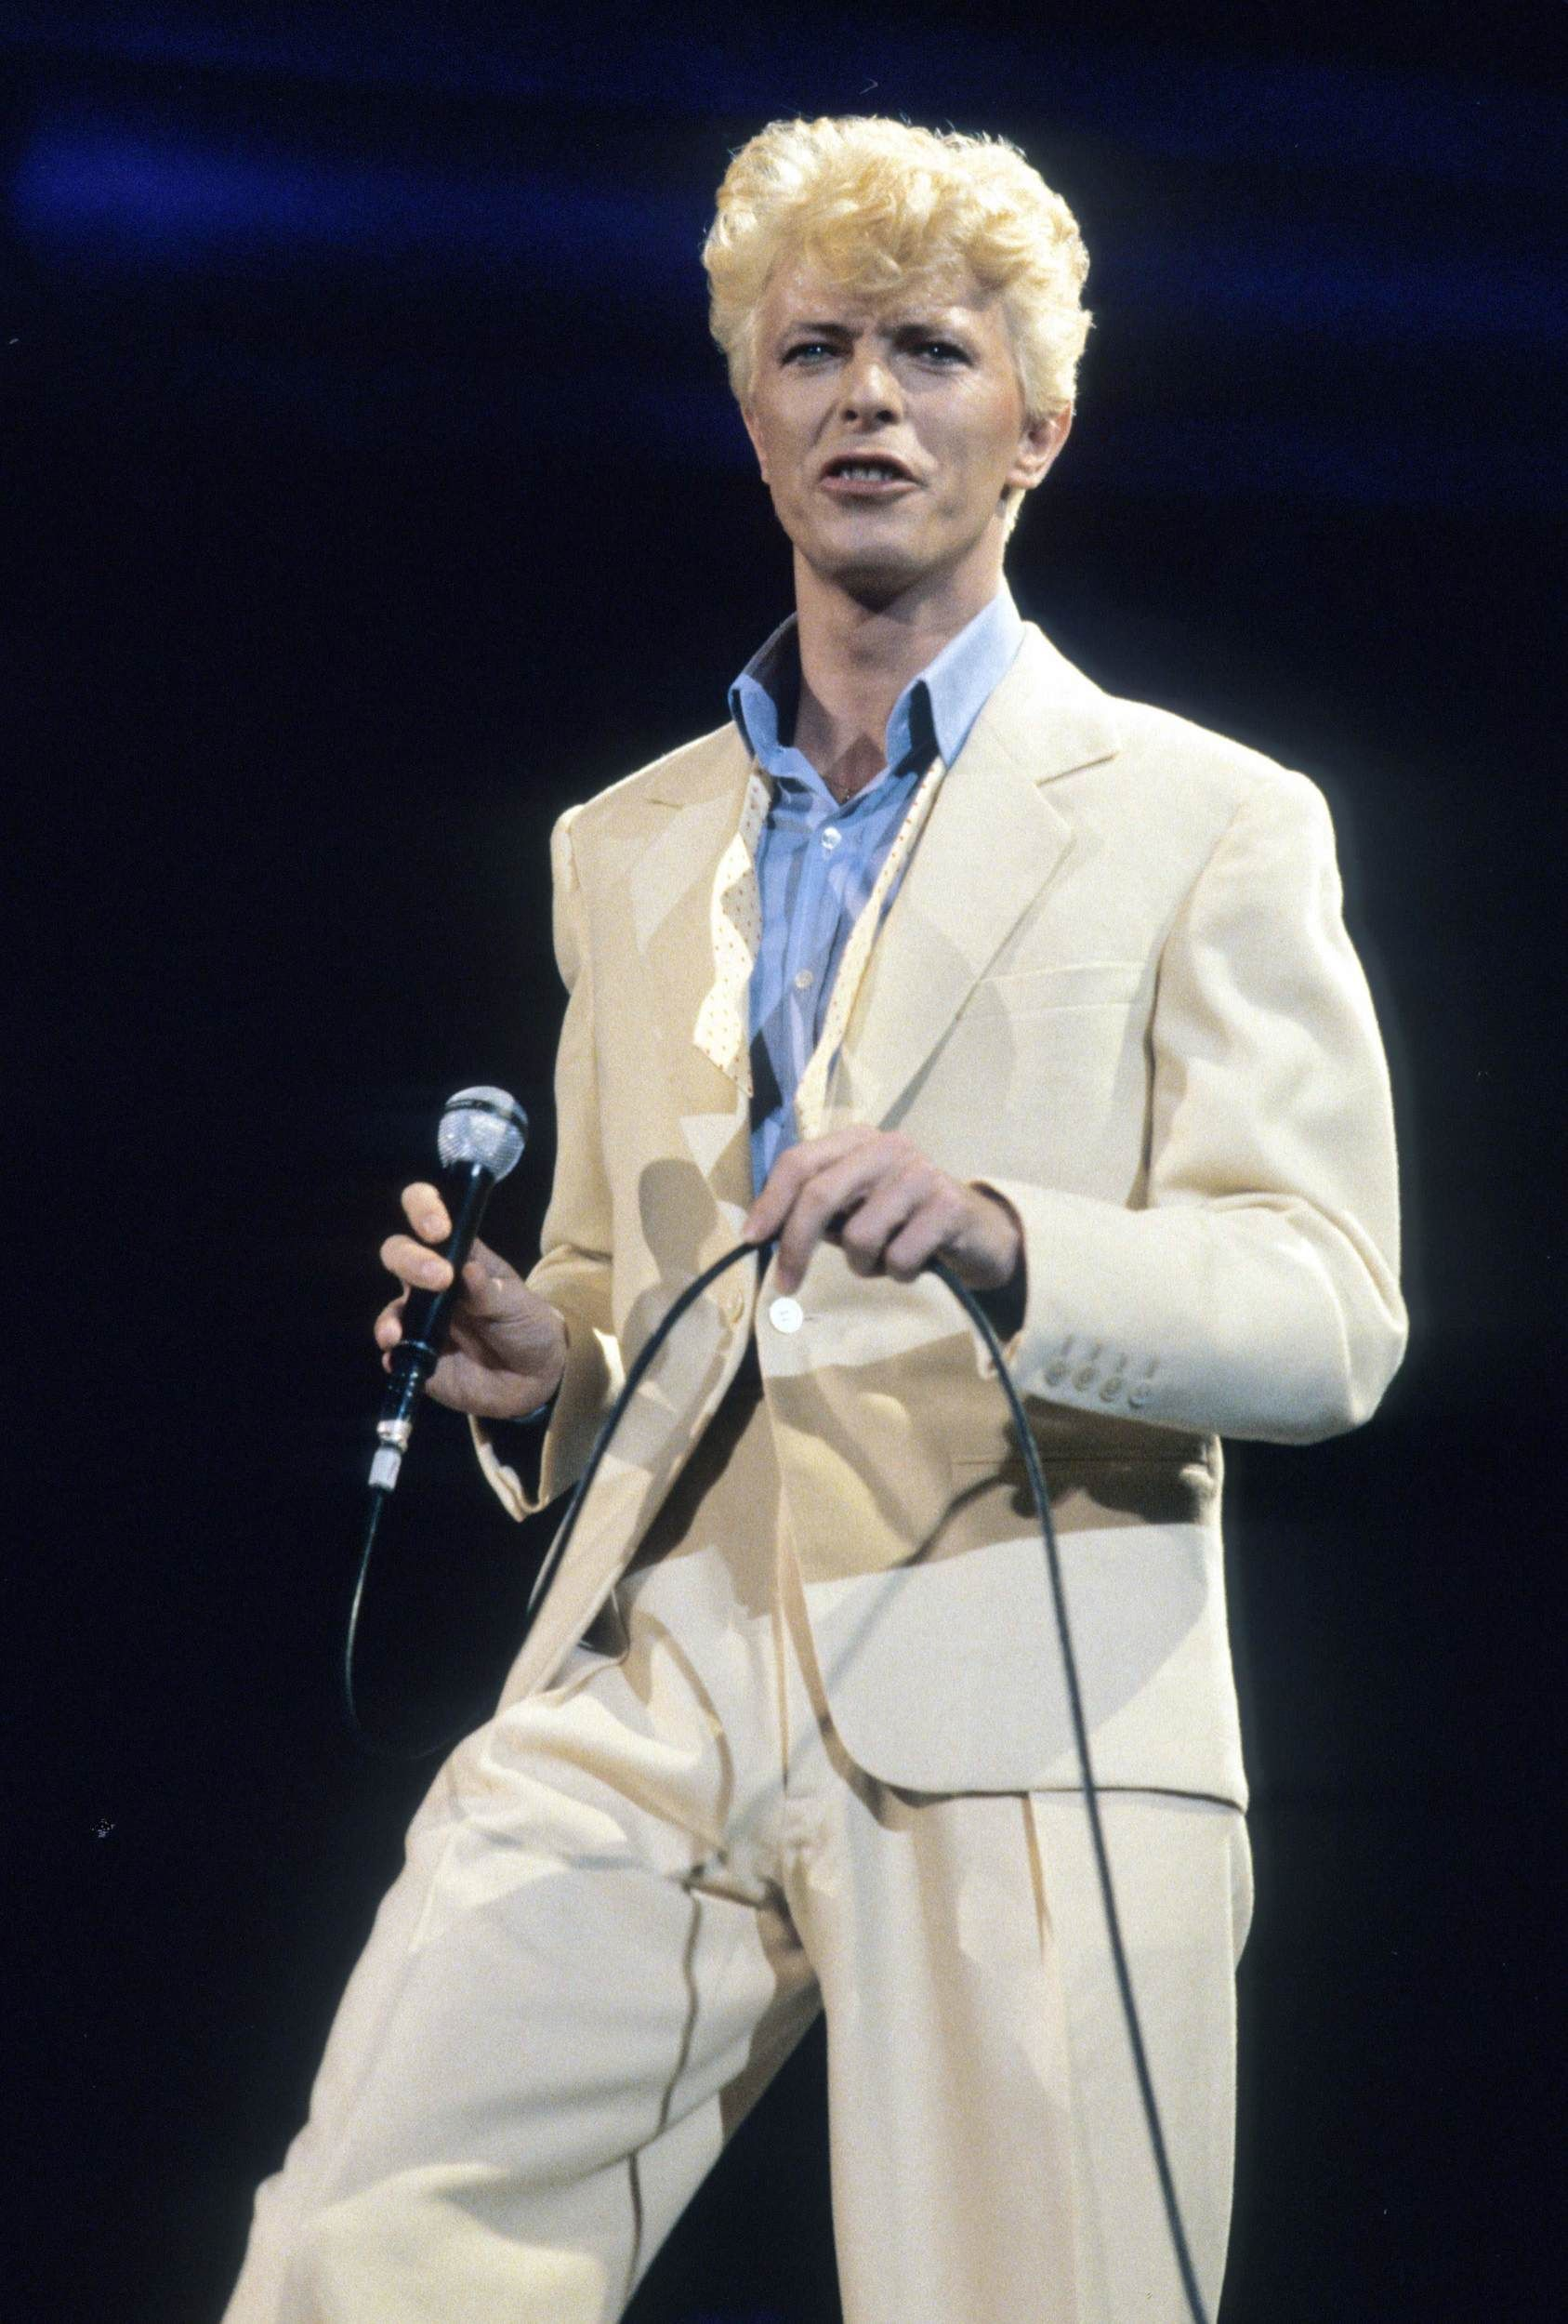 Bing Crosby S Kids Recall Dad S Duet With David Bowie David Bowie David Bowie Starman Bowie